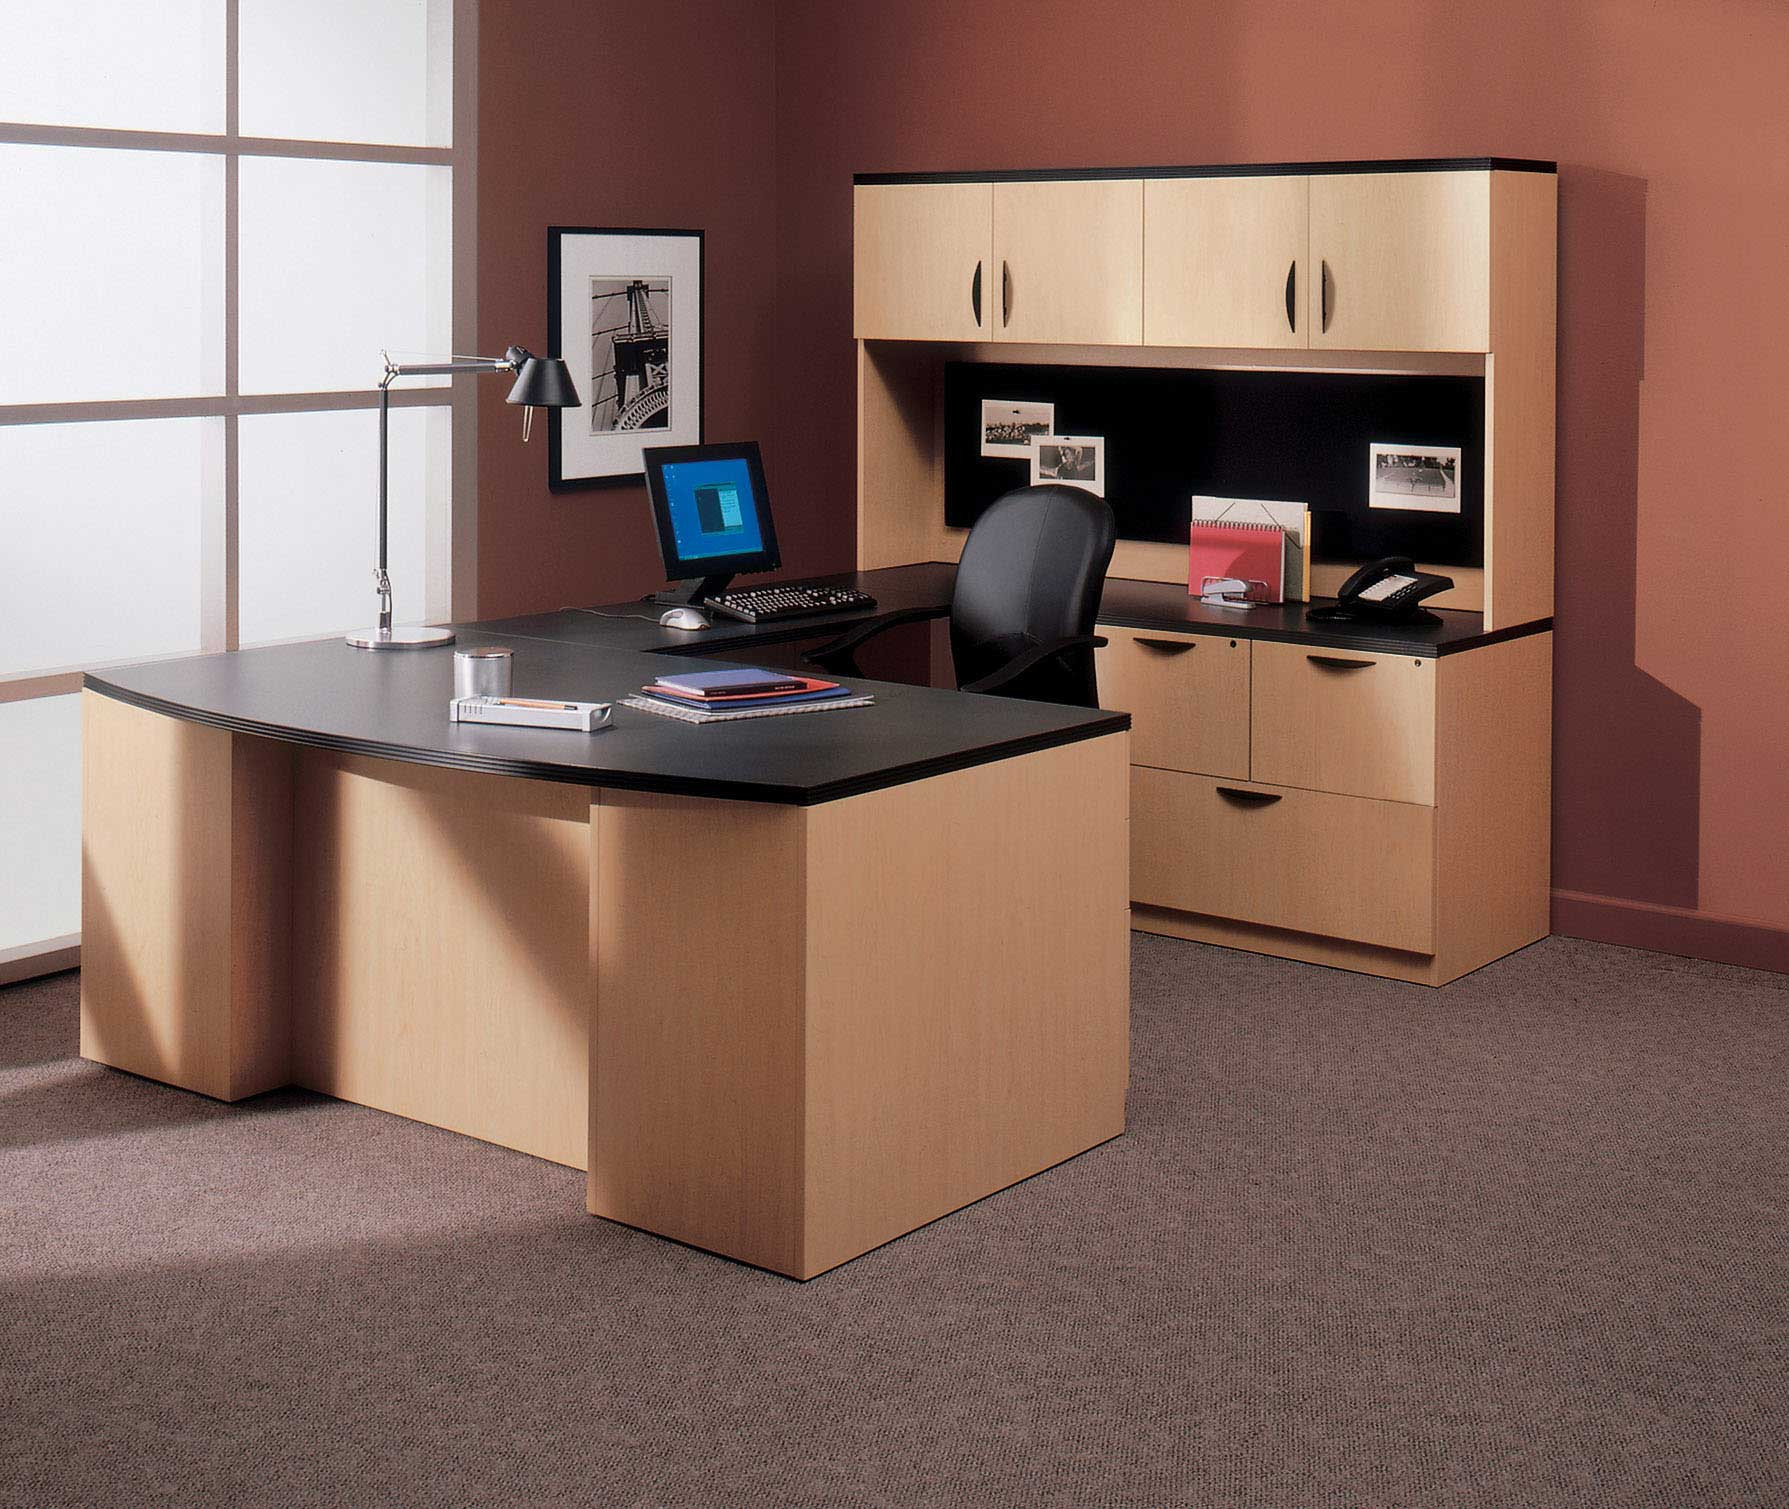 Best ideas about Small Office Furniture . Save or Pin fice Furniture Ideas for Professional Look Interior Now.